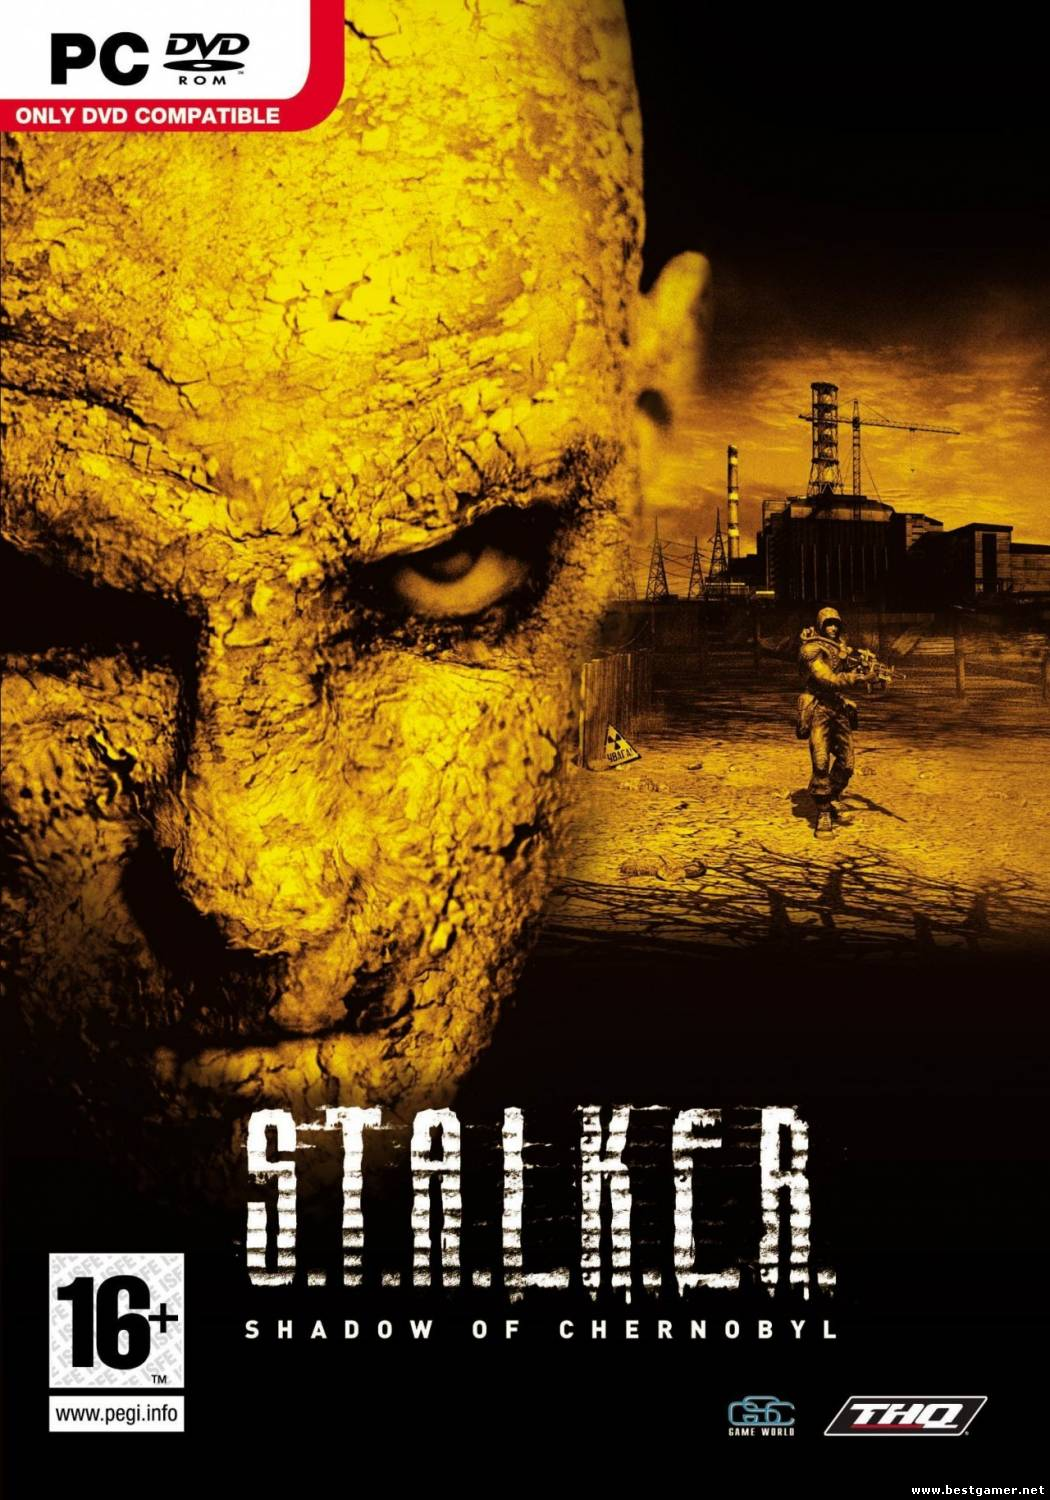 S.T.A.L.K.E.R: Shadow of Chernobyl (STEAM KEY)